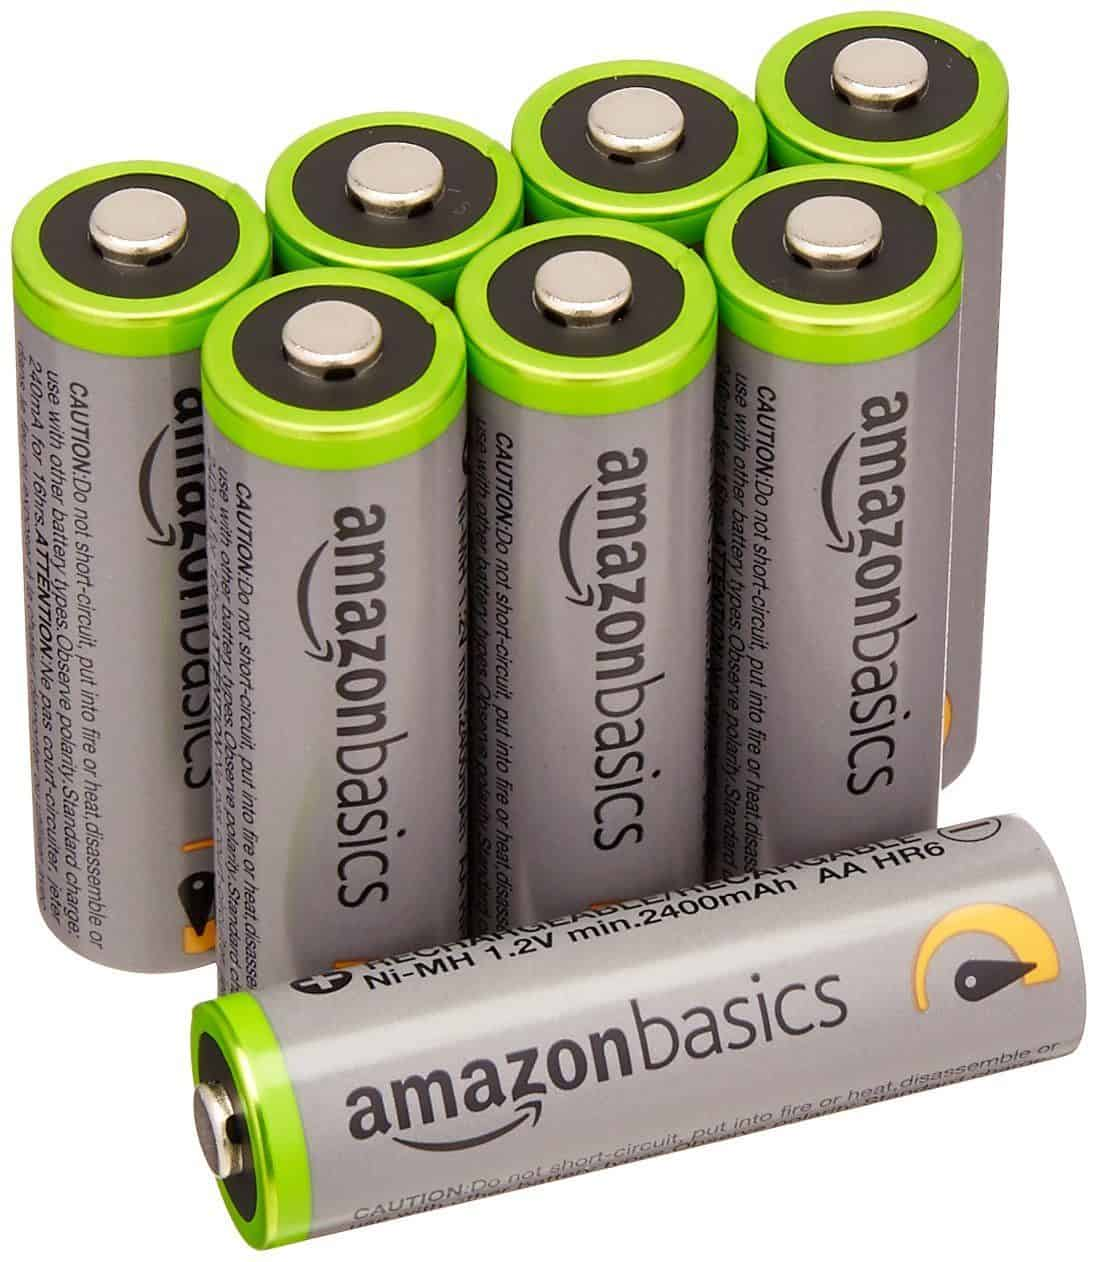 Best Value Rechargeable Batteries – Amazon Basics